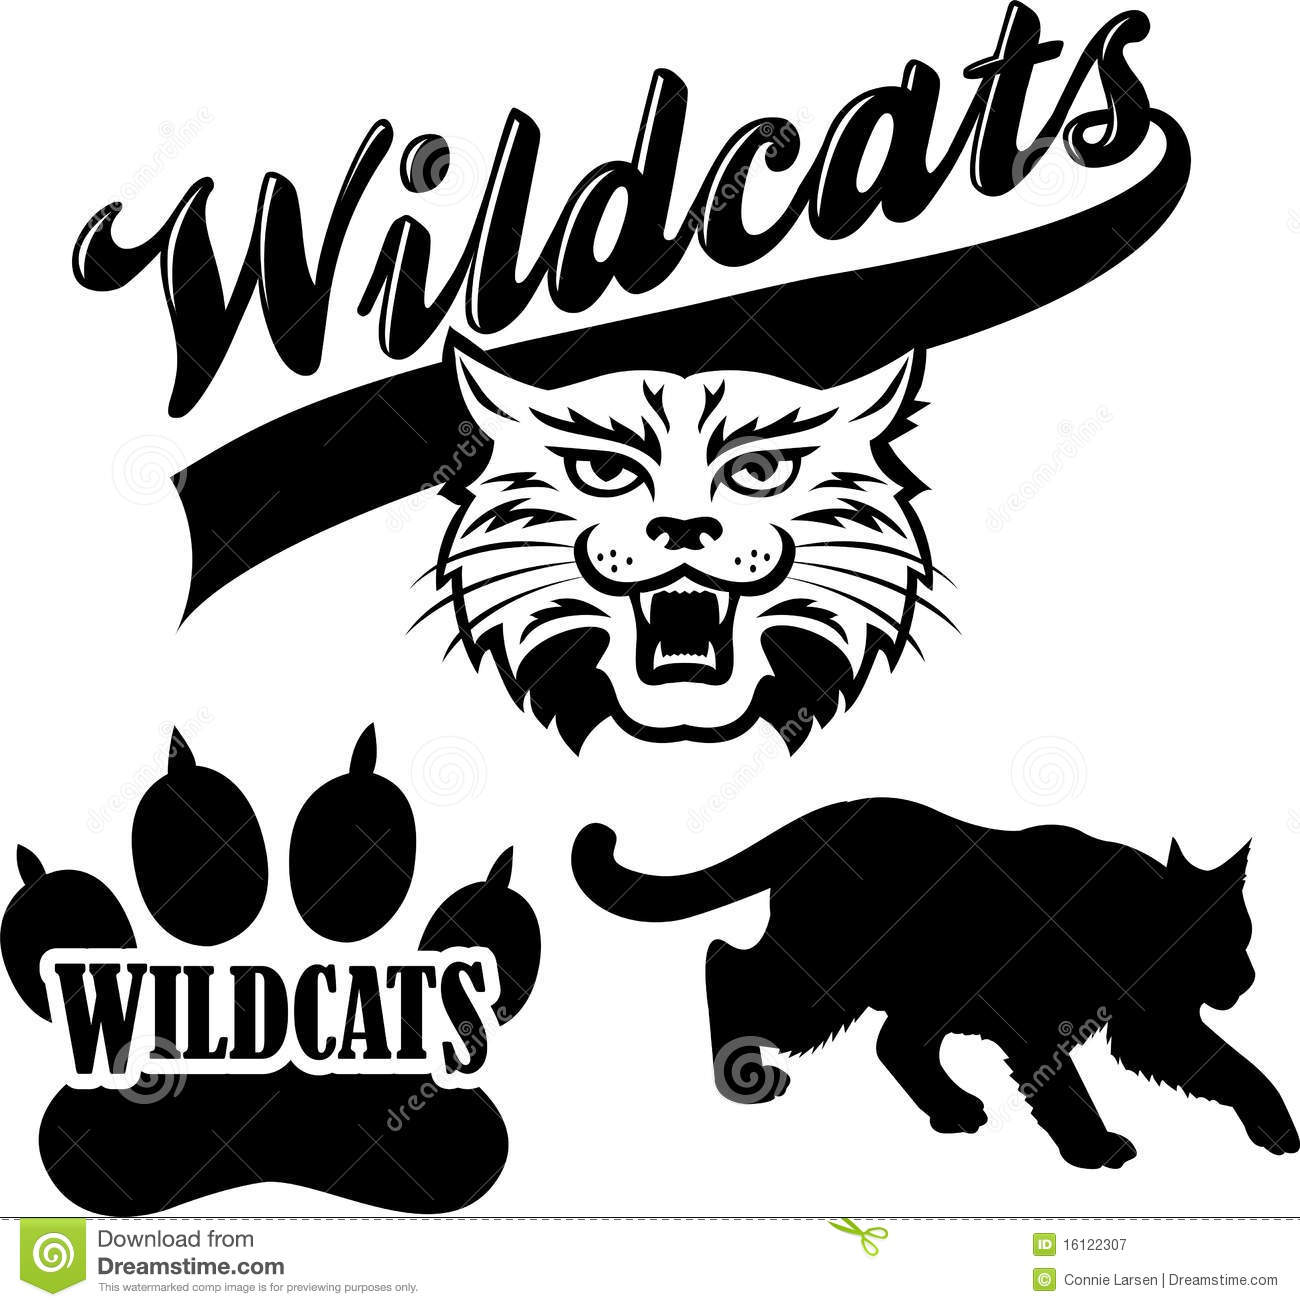 Wildcat clipart black and white Wildcats Phone  Tablet) wallpapers